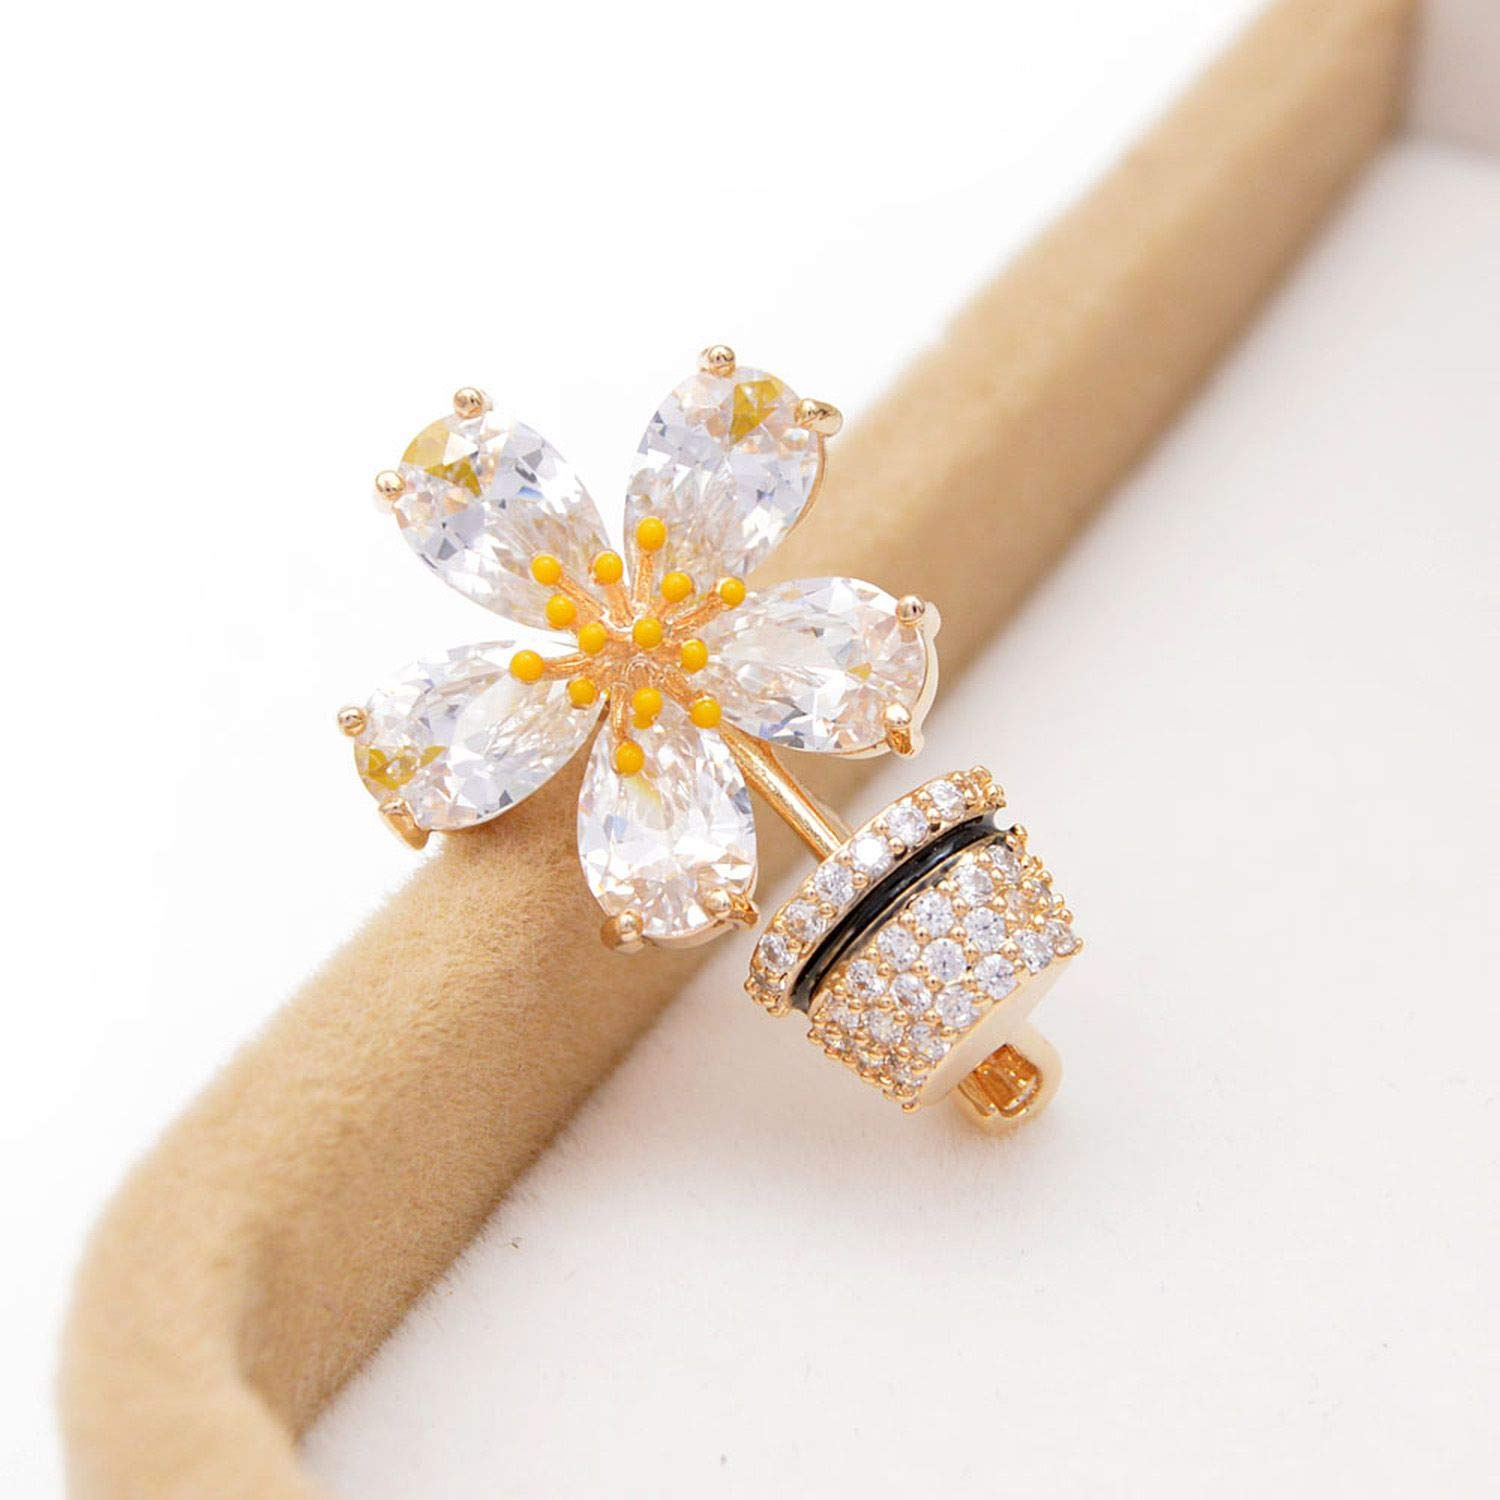 azhuang Cubic Zirconia Flower Collar Pins for Women Copper Jewelry Wedding Accessories Fashion Gift Kids Brooch